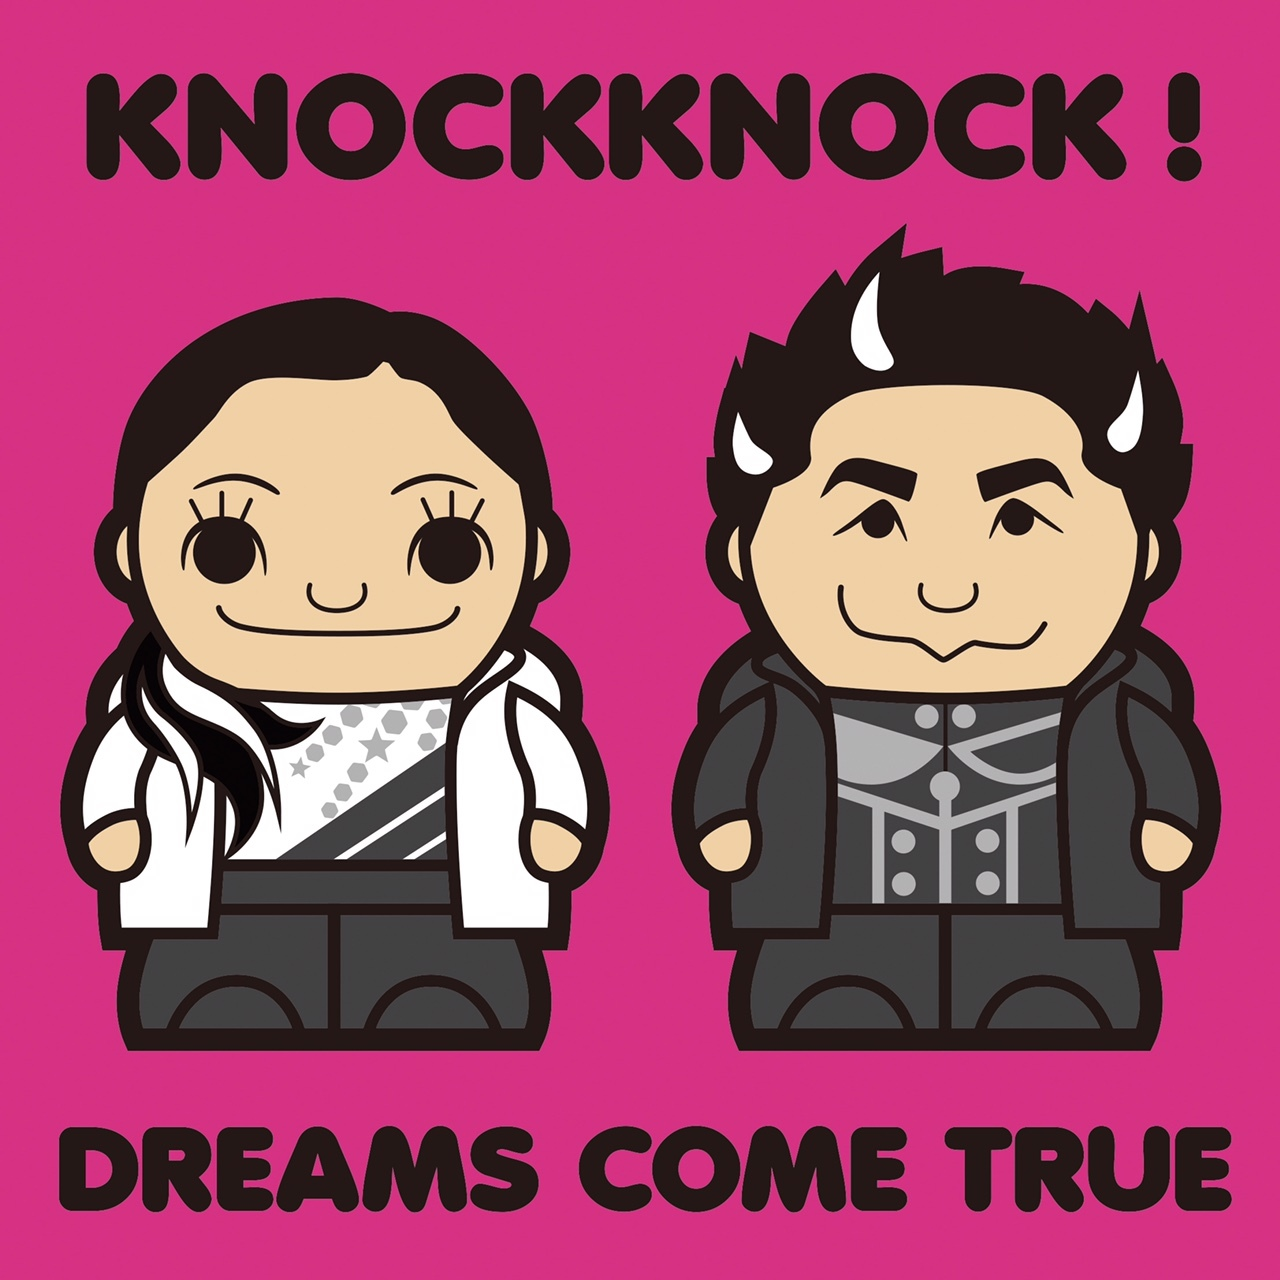 KNOCKKNODCK!/ DREAMS COME TRUE